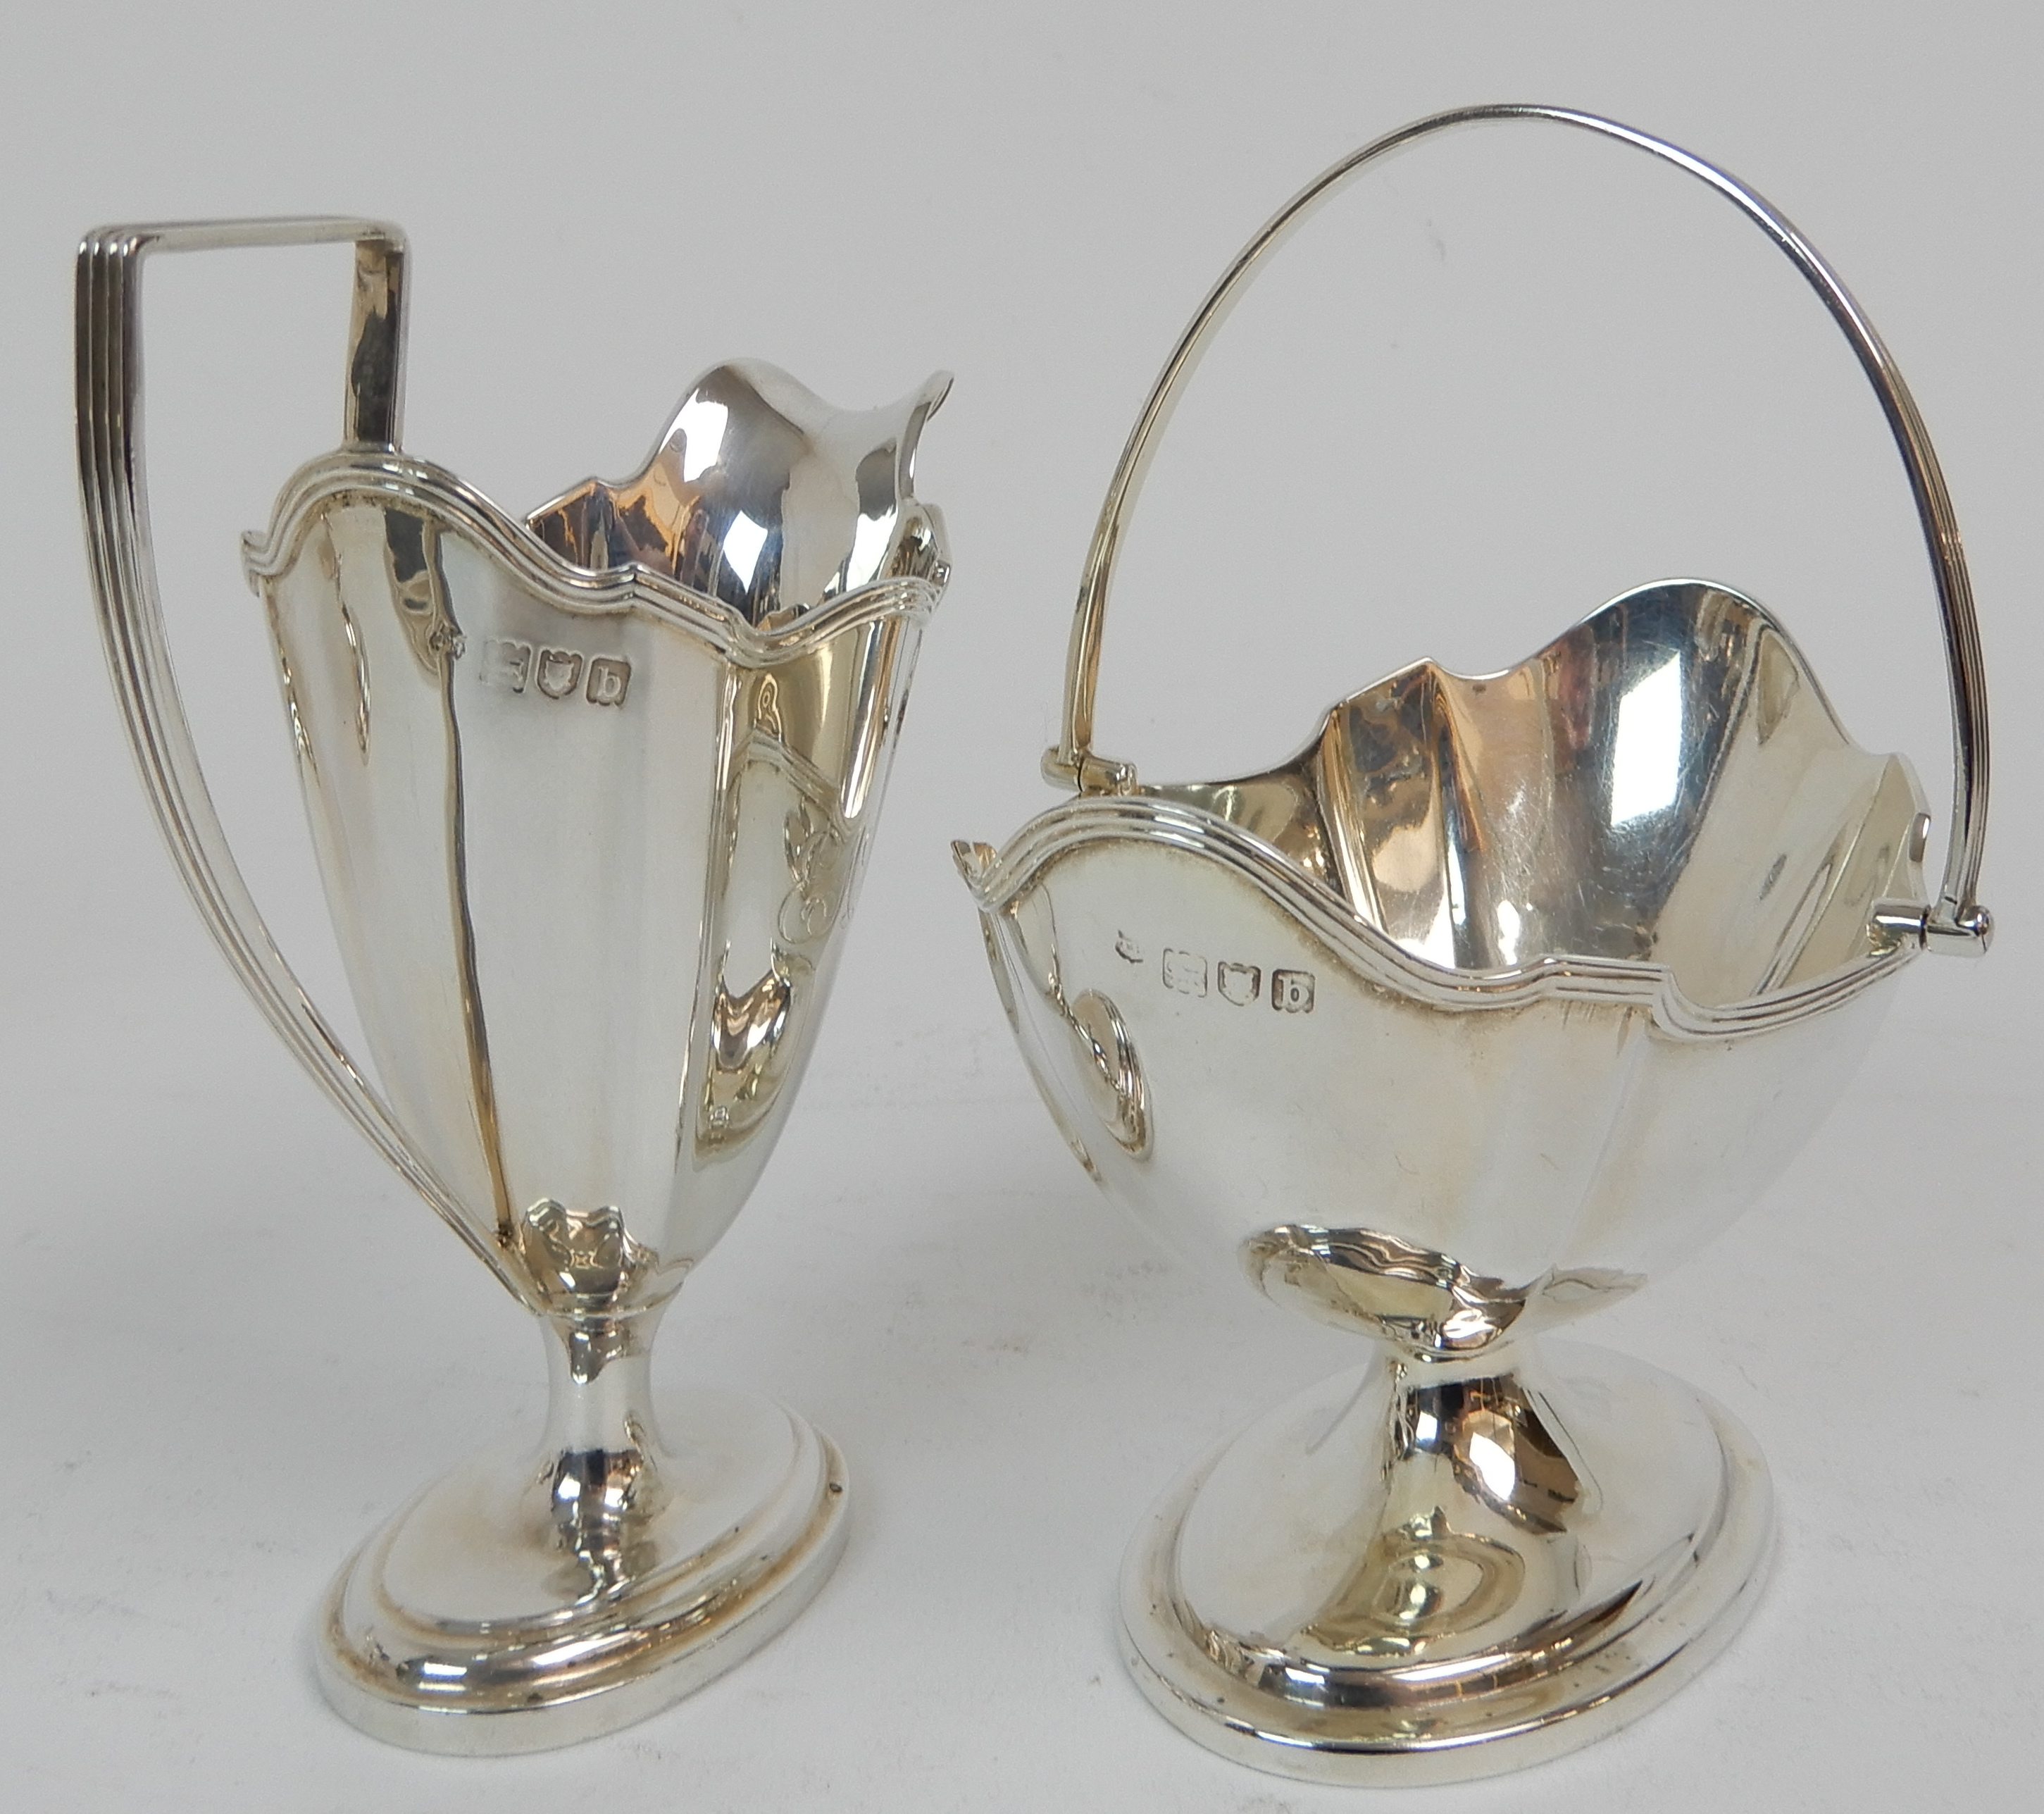 Lot 157 - A LATE VICTORIAN FOUR PIECE SILVER TEA SERVICE by Thomas Bradsbury & Sons, London 1897 comprising;